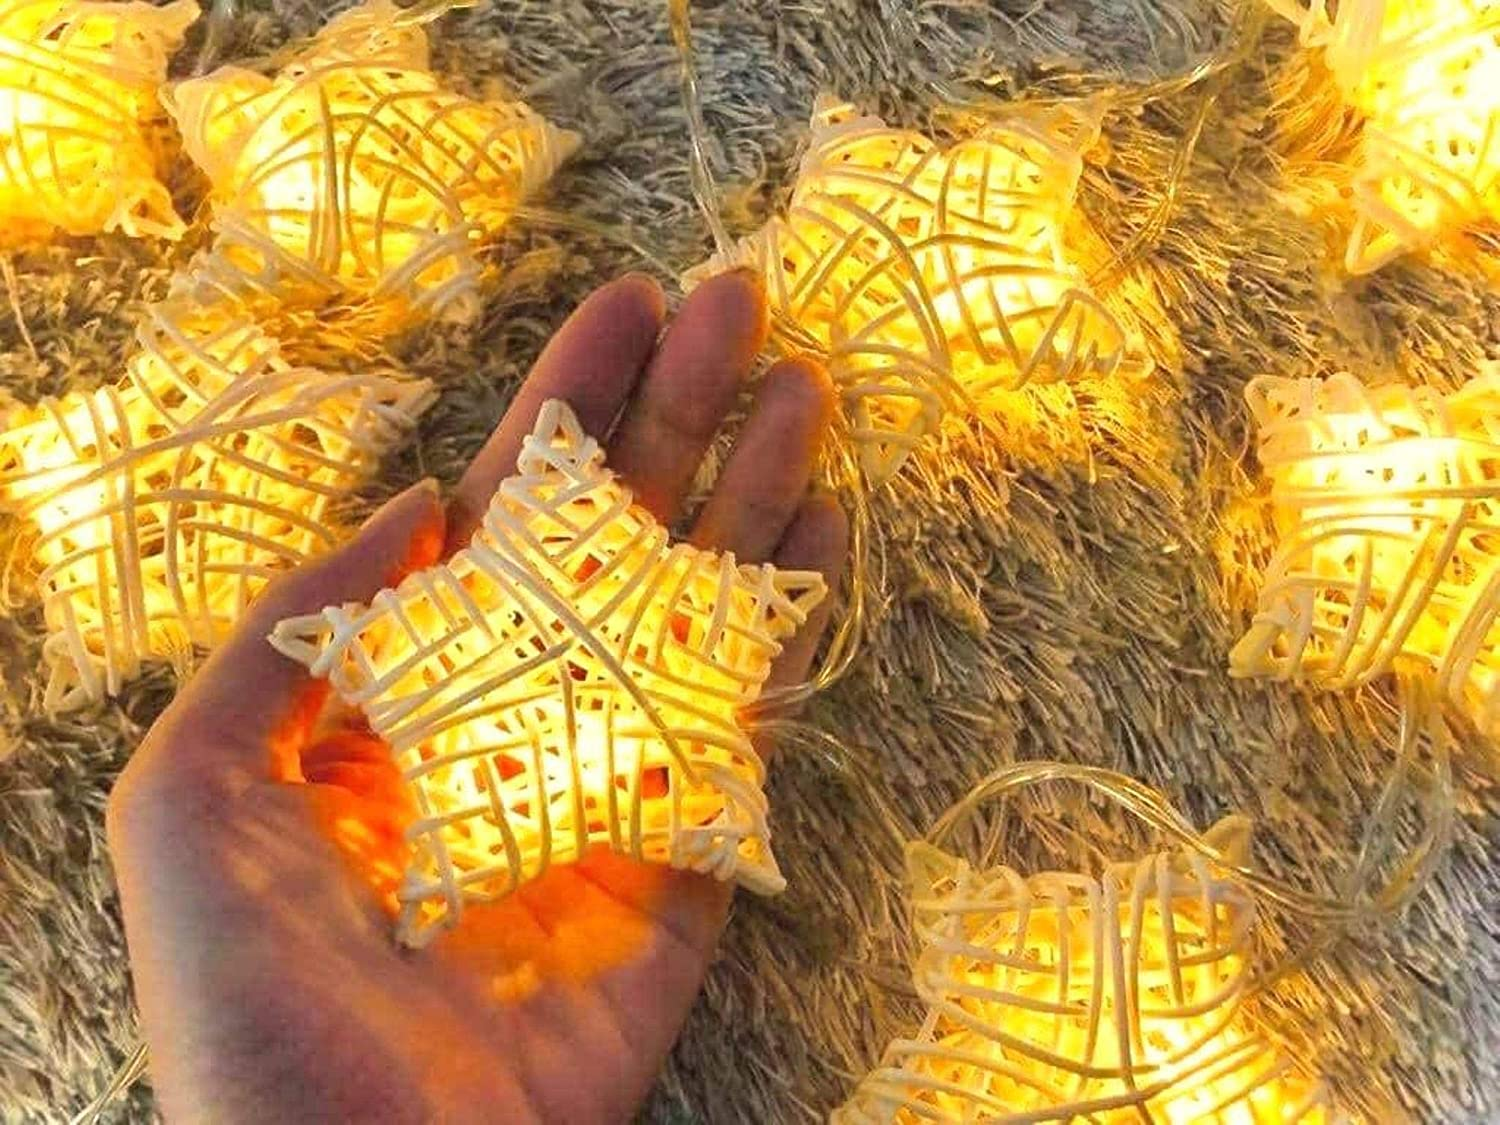 Star String Lights Christmas Decoration Fairy String Lights Battery Operated 20 LED Christmas Décor Indoor Outdoor Home Garden Festival Wedding Party Starry Lighting